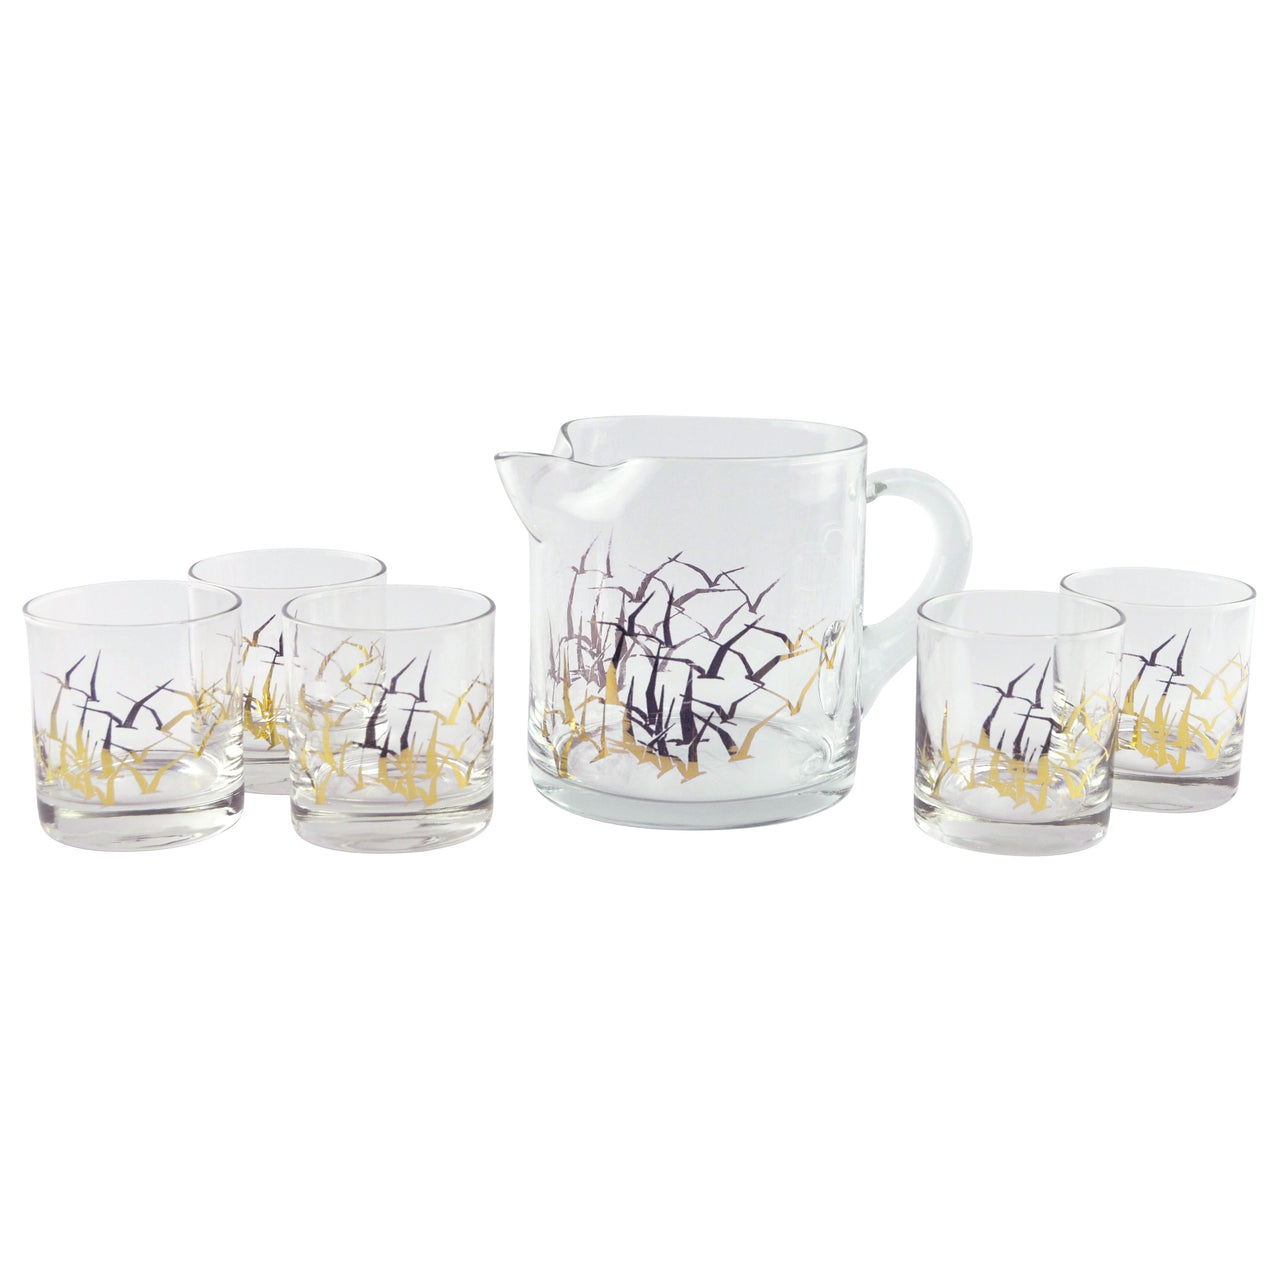 Gold Seagulls Cocktail Pitcher Set | The Hour Shop Vintage